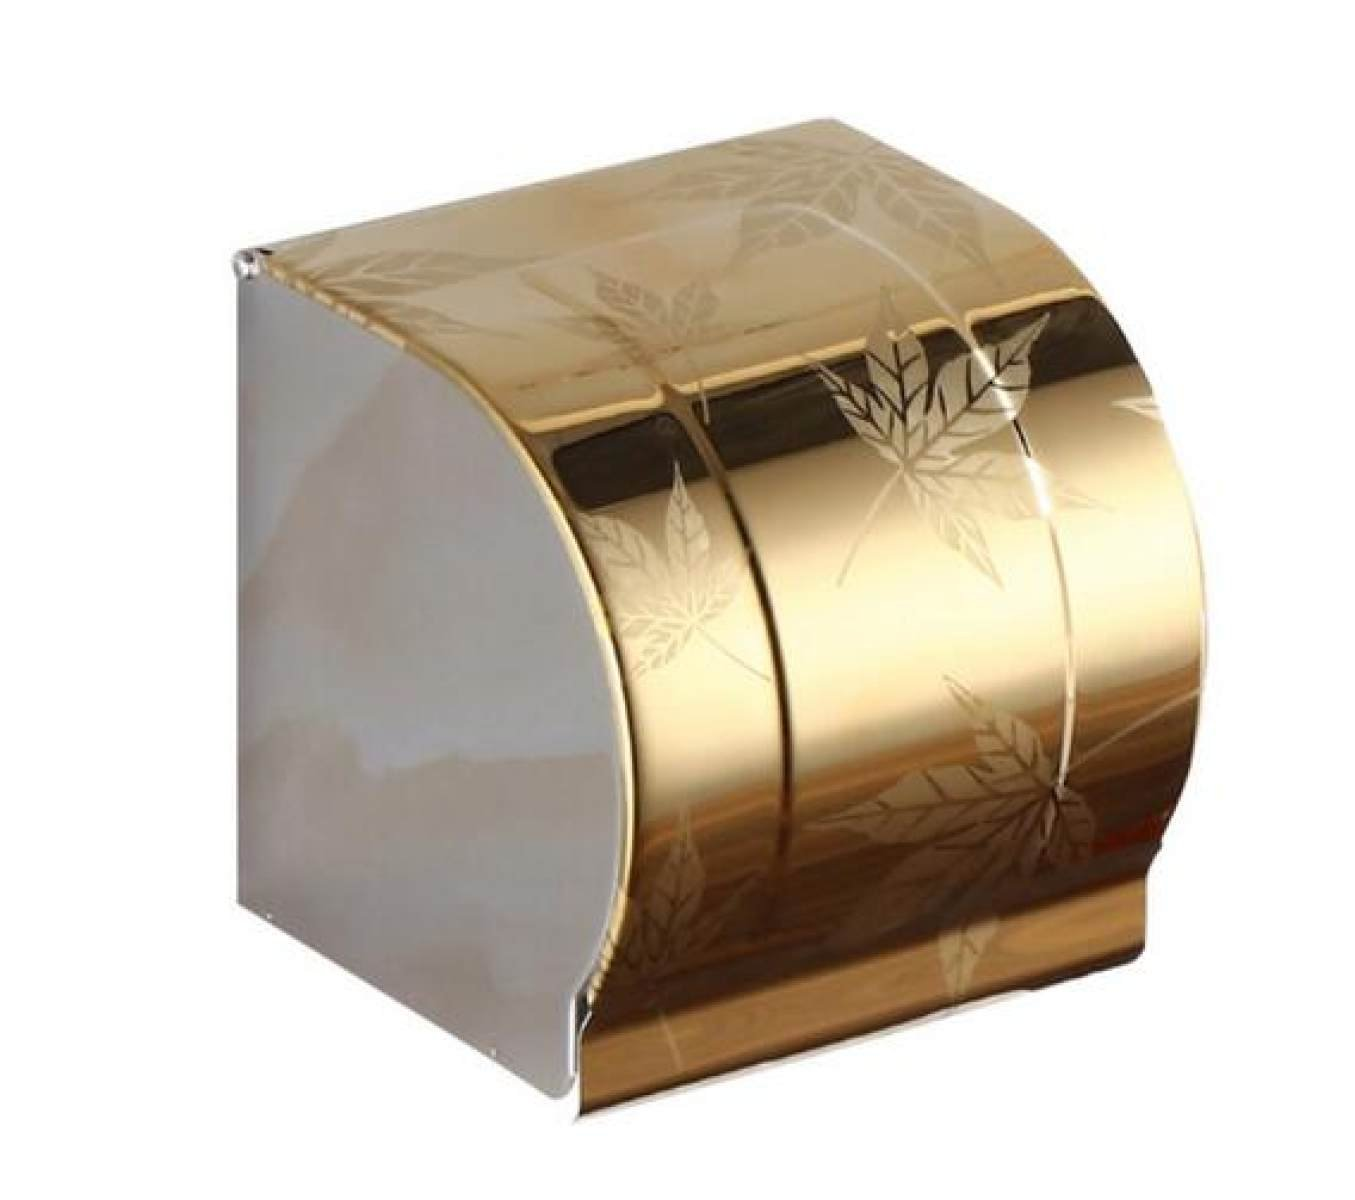 Baño Espesar Papel De Acero Inoxidable Toalla Rack Soporte De Papel En Rollo Impermeable,Goldleaf: Amazon.es: Hogar